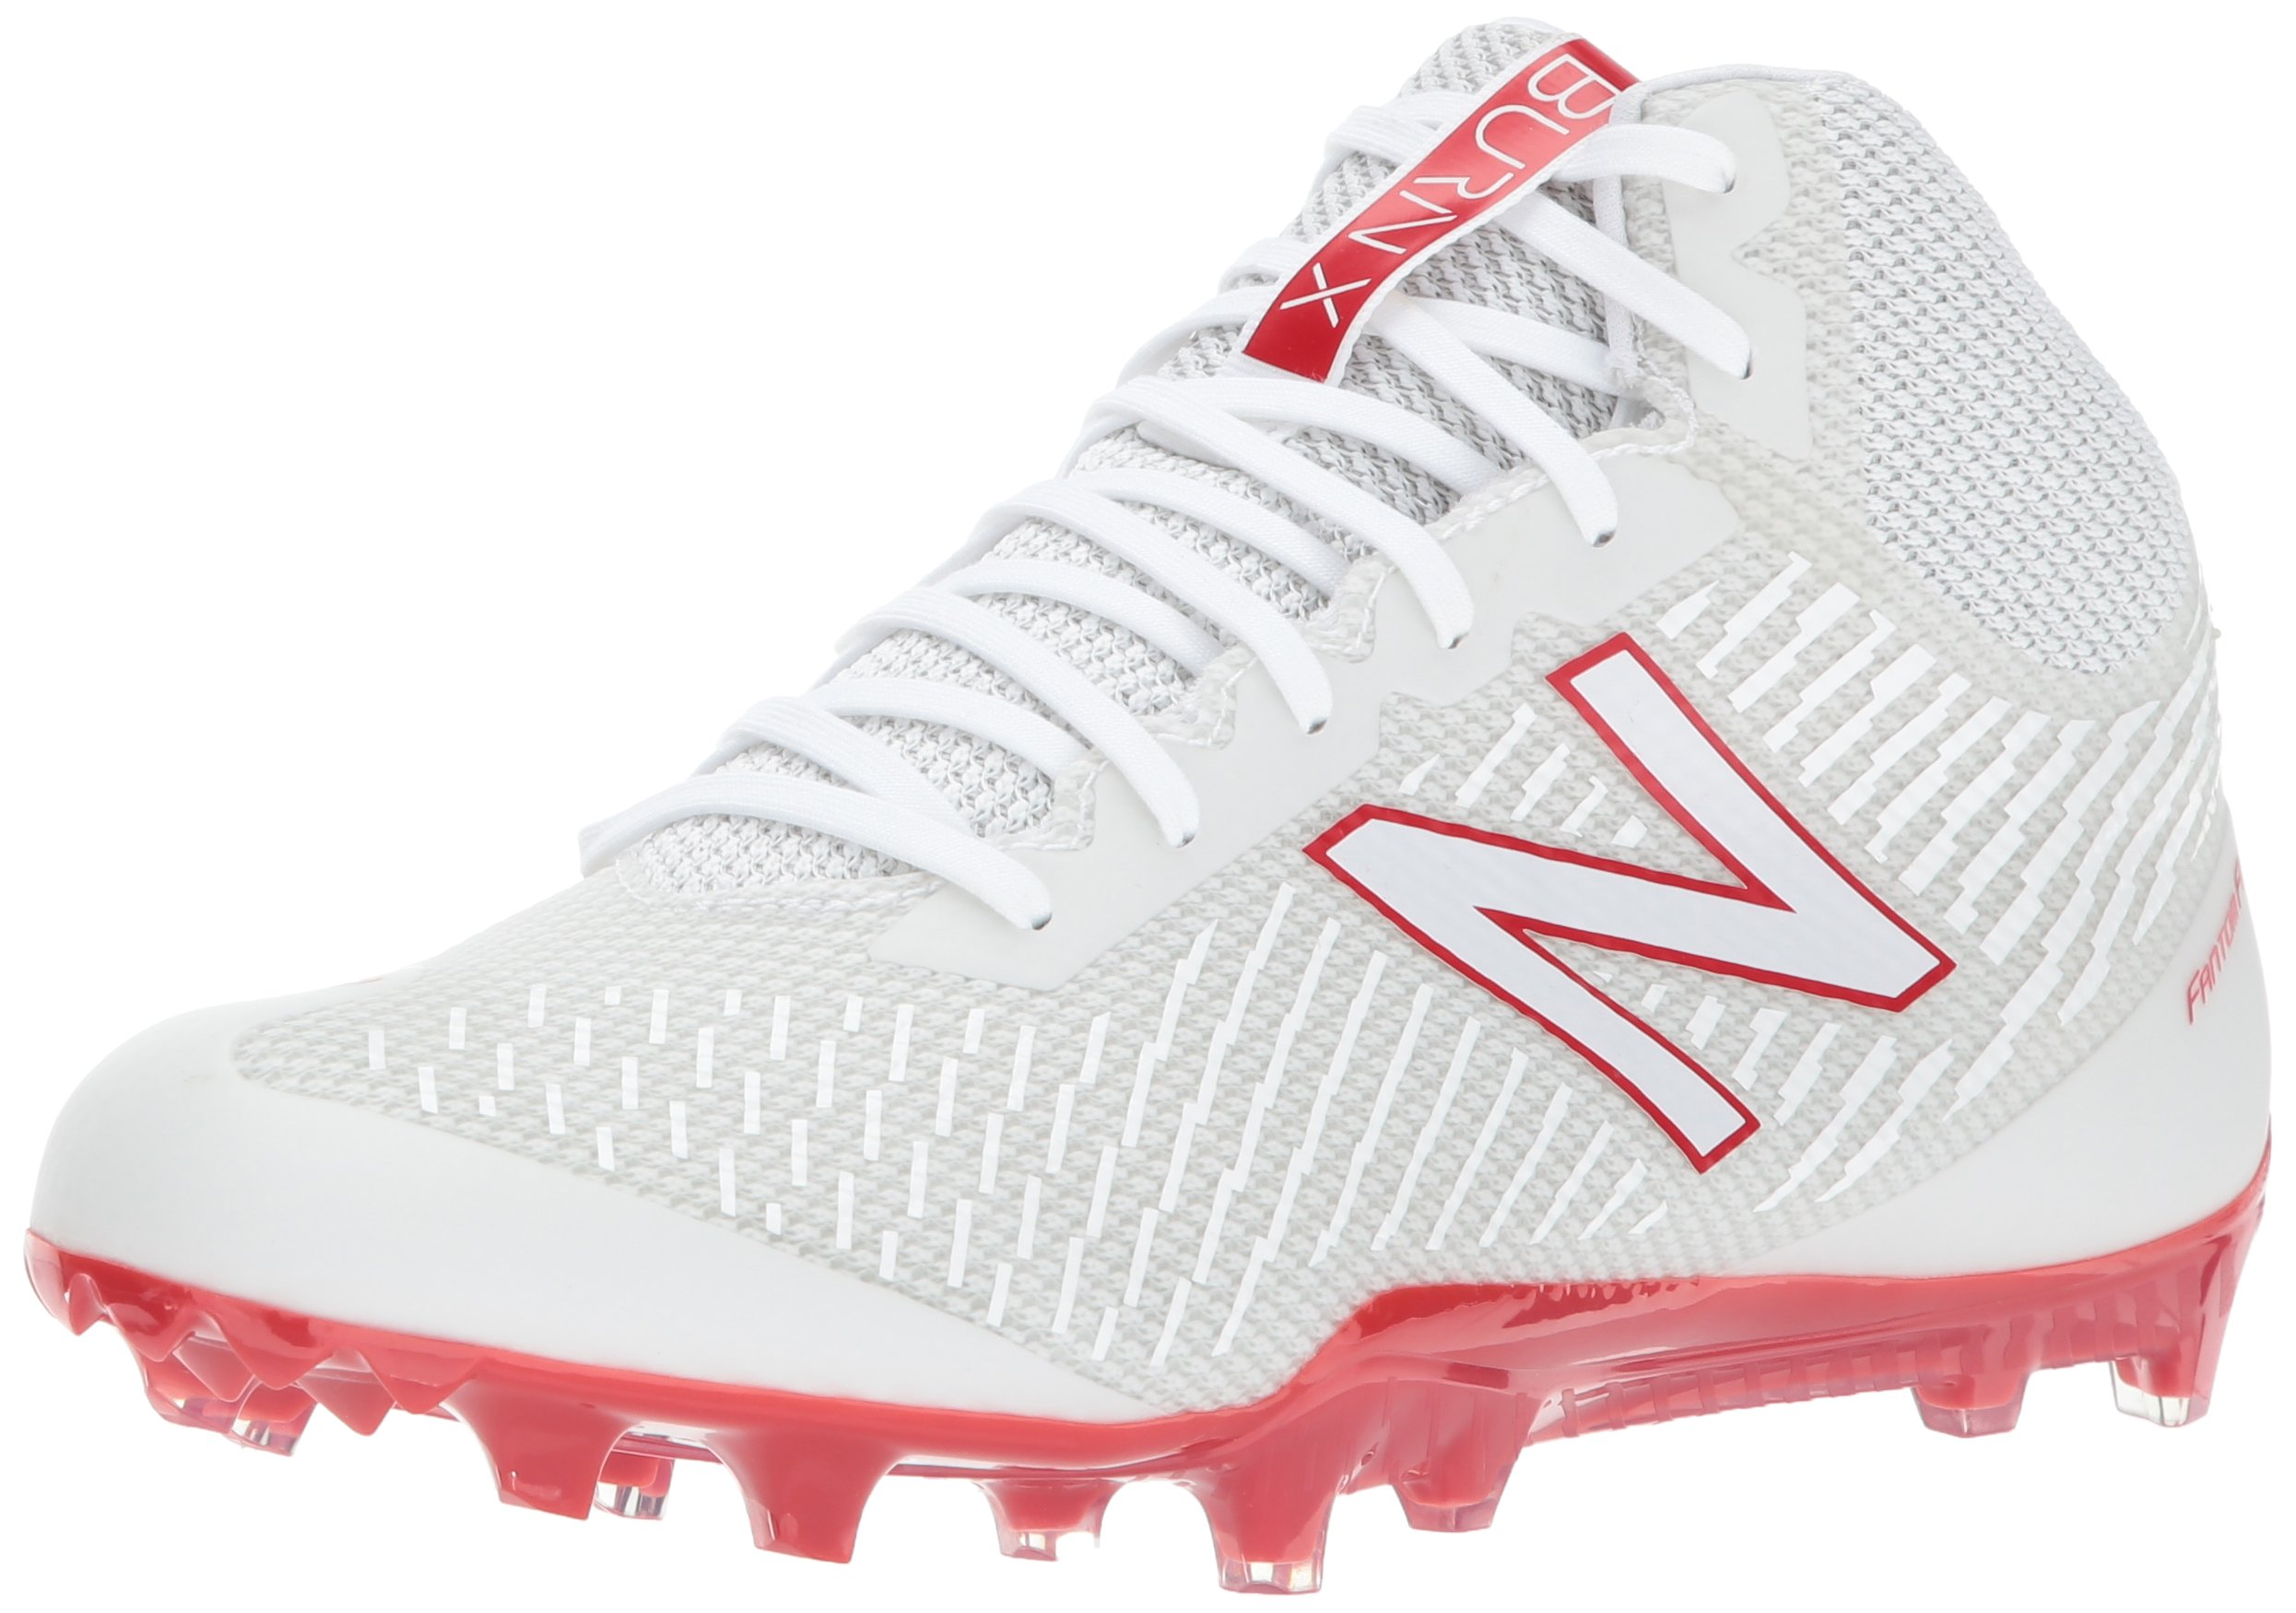 New Balance Men's BURN Mid Speed Lacrosse Shoe, White/Red, 12 2E US by New Balance